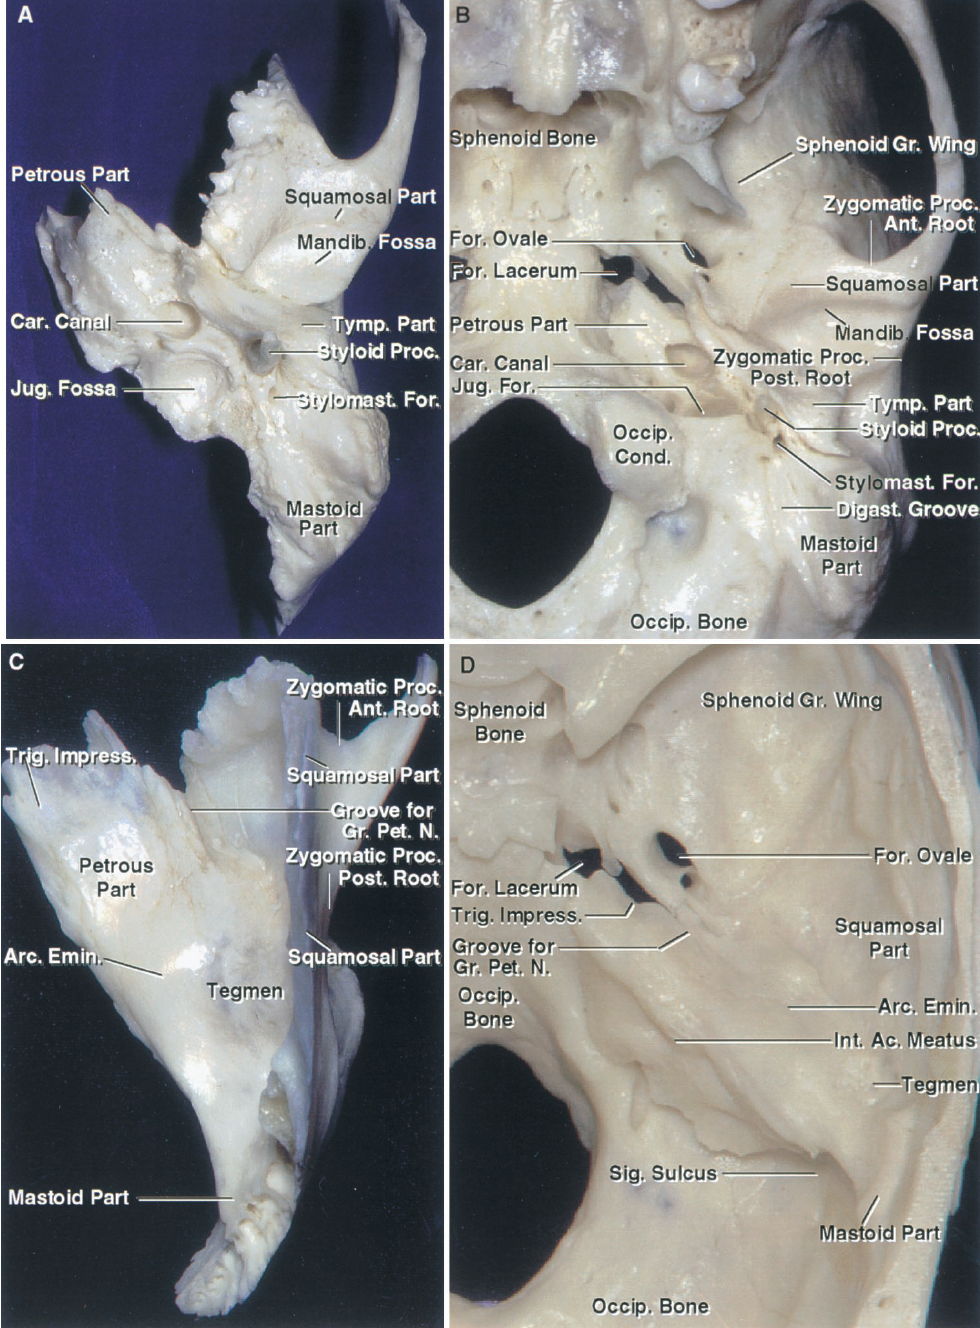 FIGURE 8.1. Temporal bone. A and B, inferior views. A, the temporal bone has a squamosal part, which forms some of the floor and lateral wall of the middle cranial fossa. It is also the site of the mandibular fossa in which the mandibular condyle sits. The tympanic part forms the anterior, lower, and part of the posterior wall of the external canal, part of the wall of the tympanic cavity, the osseous portion of the eustachian tube, and the posterior wall of the mandibular fossa. The mastoid portion contains the mastoid air cells and mastoid antrum. The petrous part is the site of the auditory and vestibular labyrinth, the carotid canal, the internal acoustic meatus, and the facial canal. The petrous part also forms the anterior wall and the dome of the jugular fossa. The styloid part projects downward and serves as the site of attachment of three muscles. B, inferior view of the temporal and surrounding bones. The squamosal and petrous parts articulate anteriorly with the greater wing of the sphenoid. The petrous apex faces the foramen lacerum and is separated from the clival part of the occipital bone by the petroclival fissure. The occipital bone joins with the petrous part of the temporal bone to form the jugular foramen. The mandibular fossa is located between the anterior and posterior roots of the zygomatic process. C and D, superior views. C, the medial part of the upper surface is the site of the trigeminal impression in which Meckel's cave sits. Farther laterally is the prominence of the arcuate eminence overlying the superior semicircular canal. Anterolateral to the arcuate eminences is the tegmen, a thin plate of bone overlying the mastoid antrum and epitympanic area. The temporal bone articulates anteriorly with the sphenoid bone, above with the parietal bone, and posteriorly with the occipital bone. The zygomatic process of the squamosal part has an anterior and a posterior root between which, on the lower surface, is located the mandibular canal. D, t